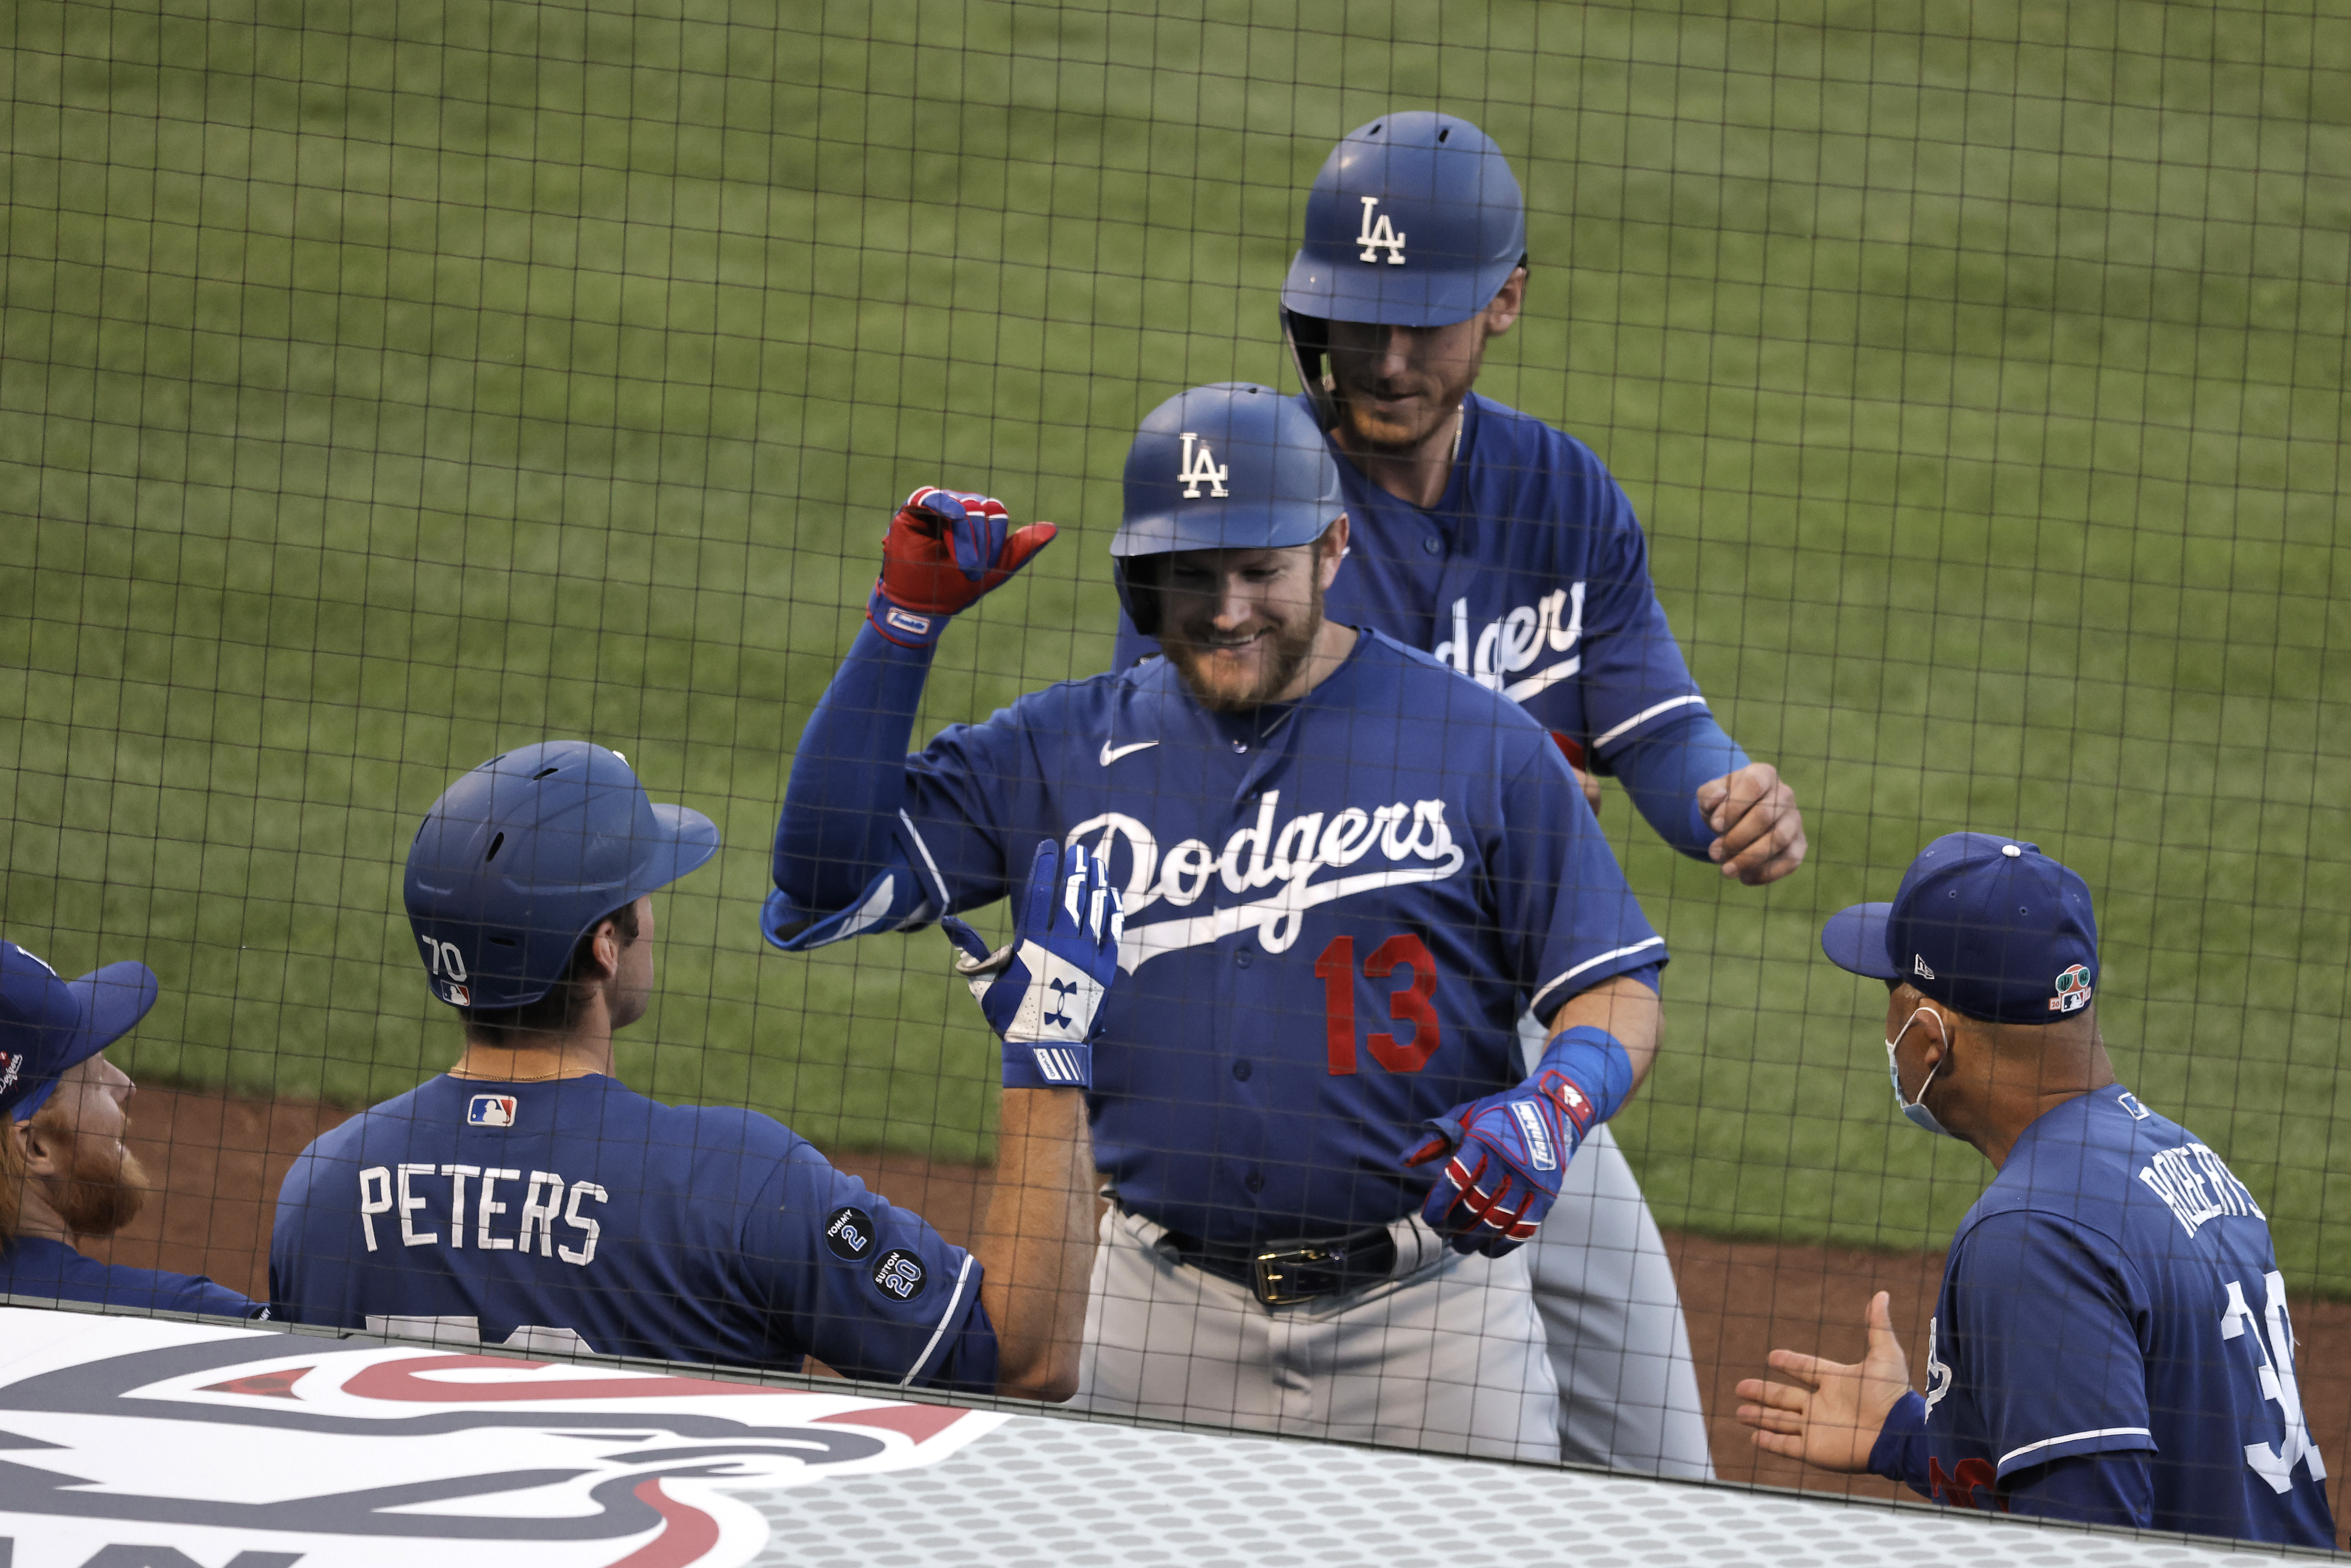 Max Muncy #13 of the Los Angeles Dodgers celebrates his two-run home run with teammates against the Los Angeles Angels during the second inning of a MLB spring training game on March 28, 2021 in Anaheim, California.